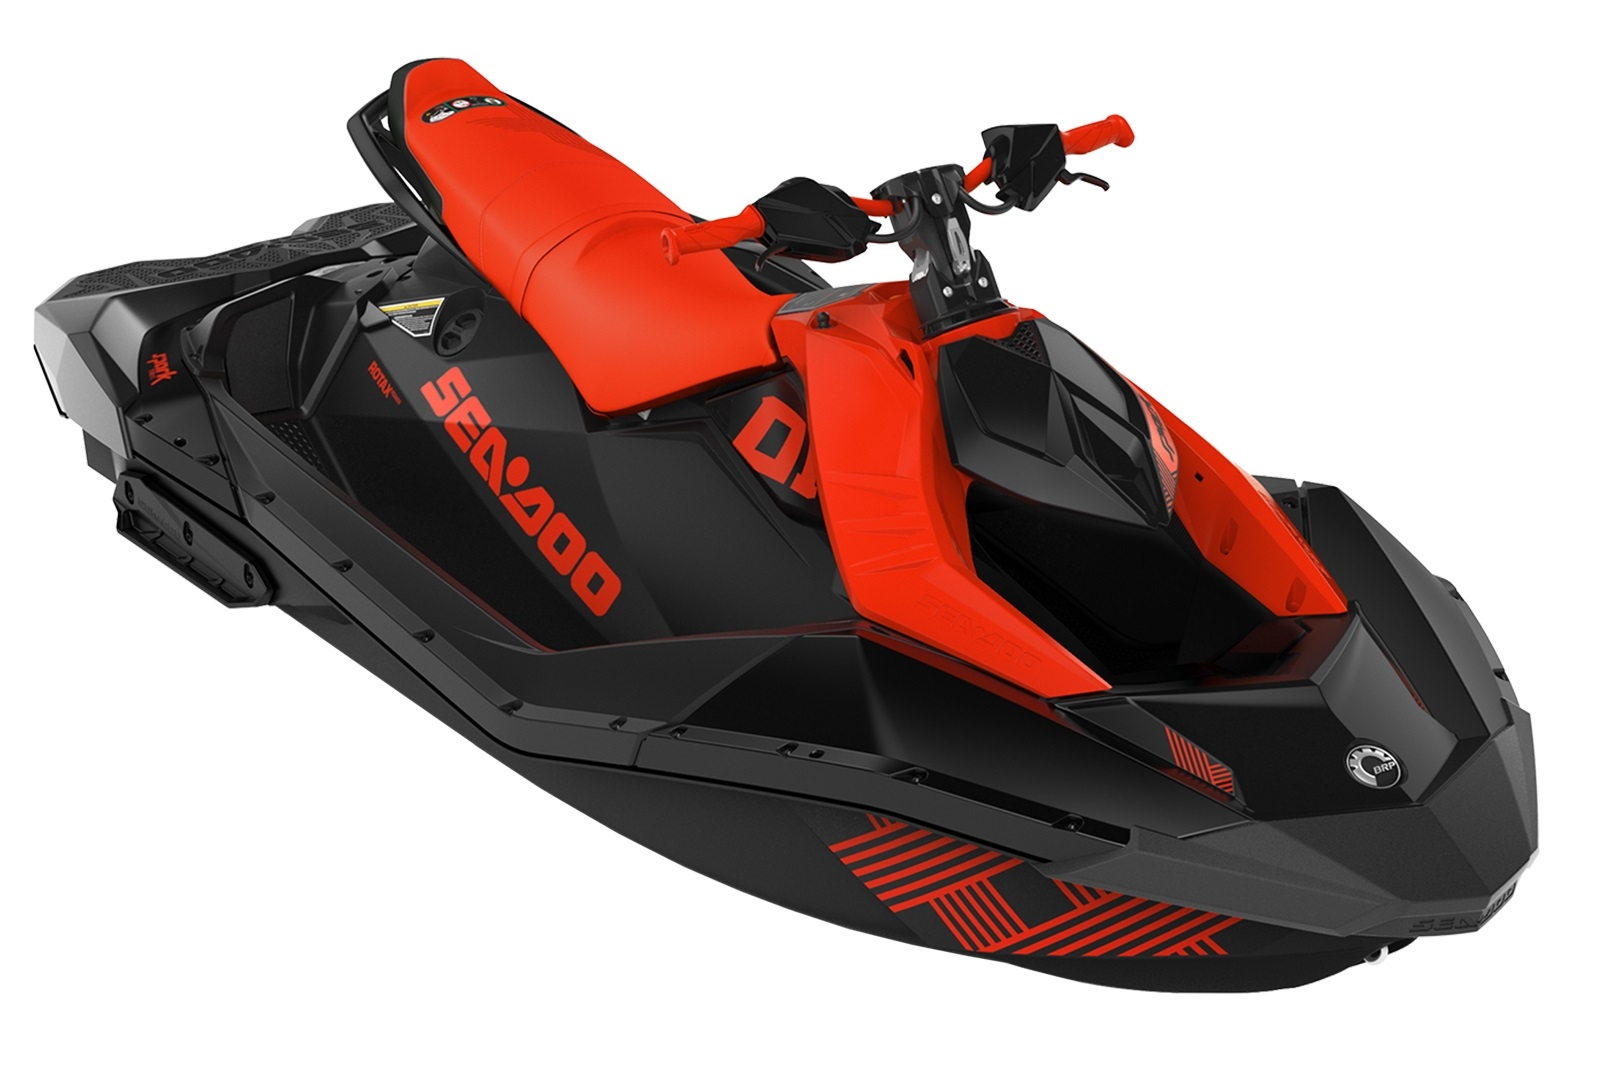 Sea Doo SPARK Trixx 900 HO ACE 3-up iBR 90hp červený